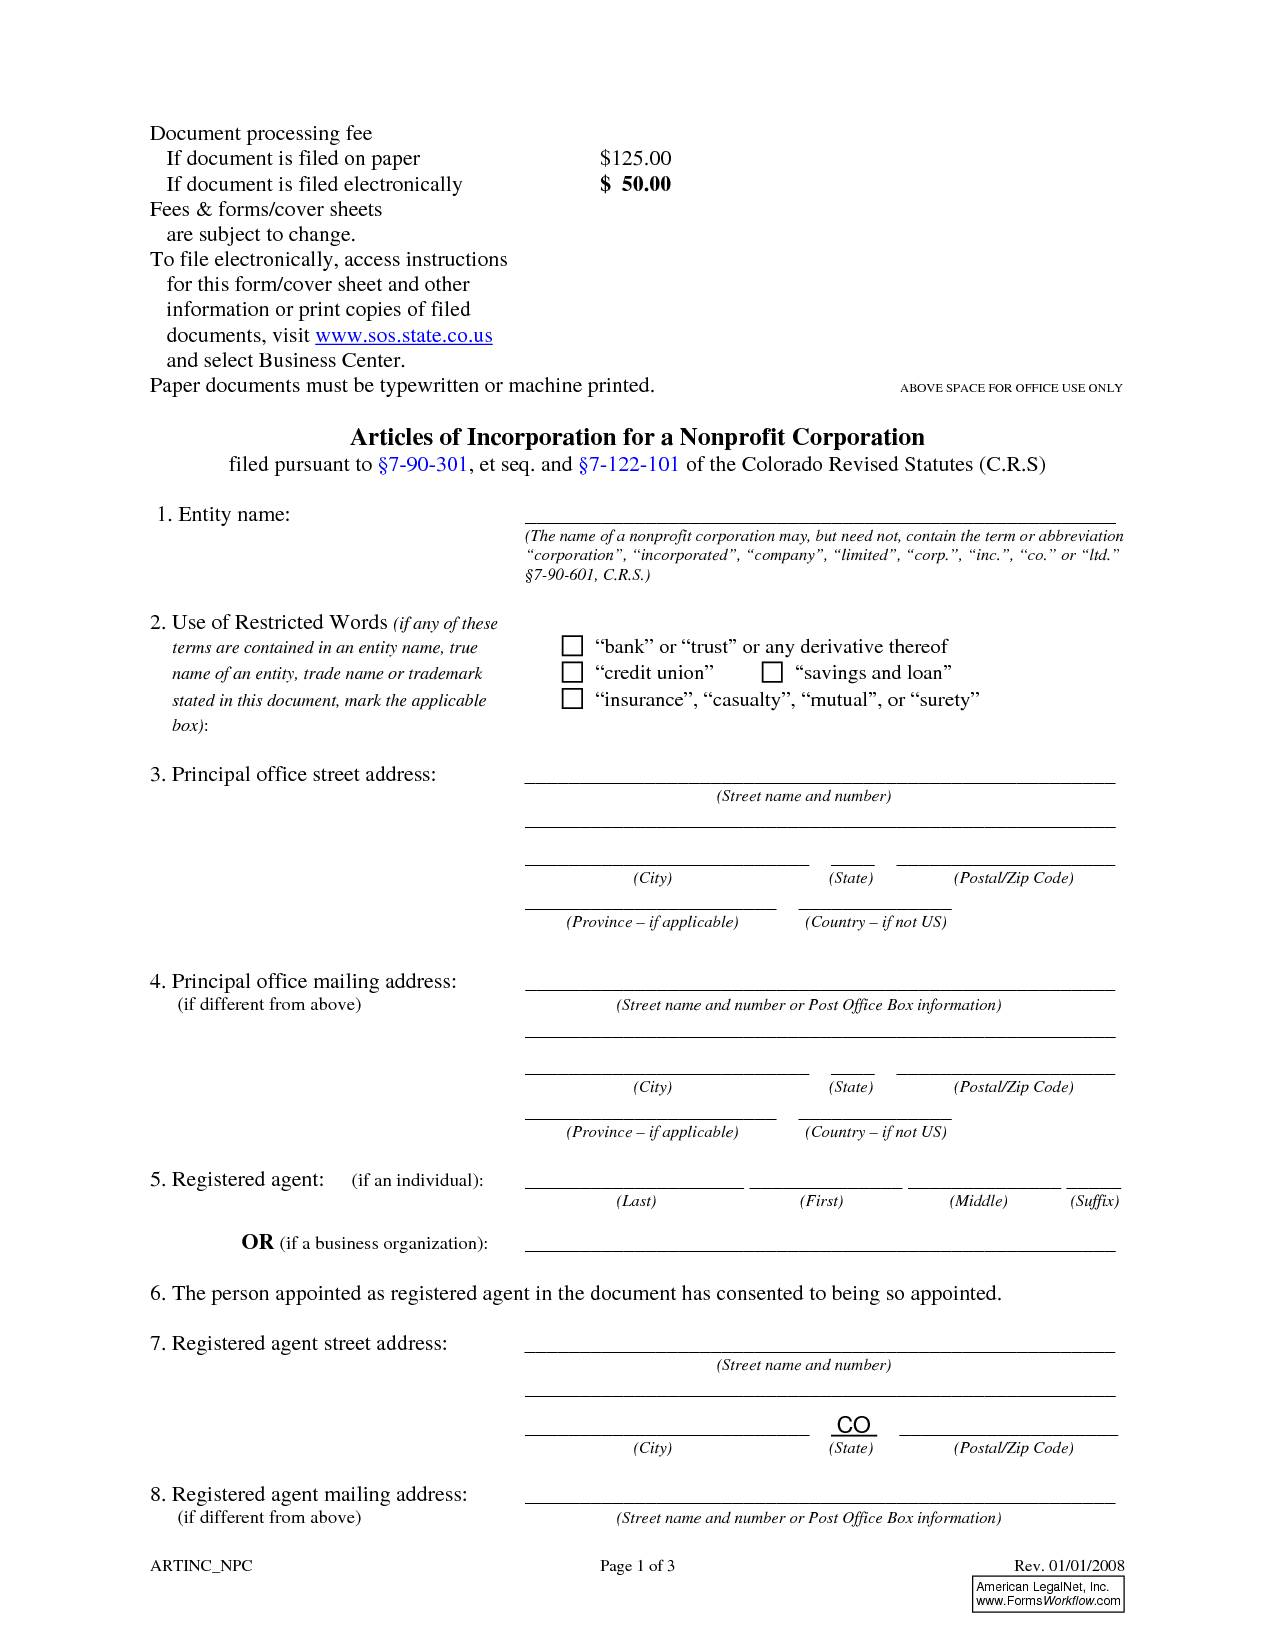 Nonprofit Articles Of Incorporation Template Colorado